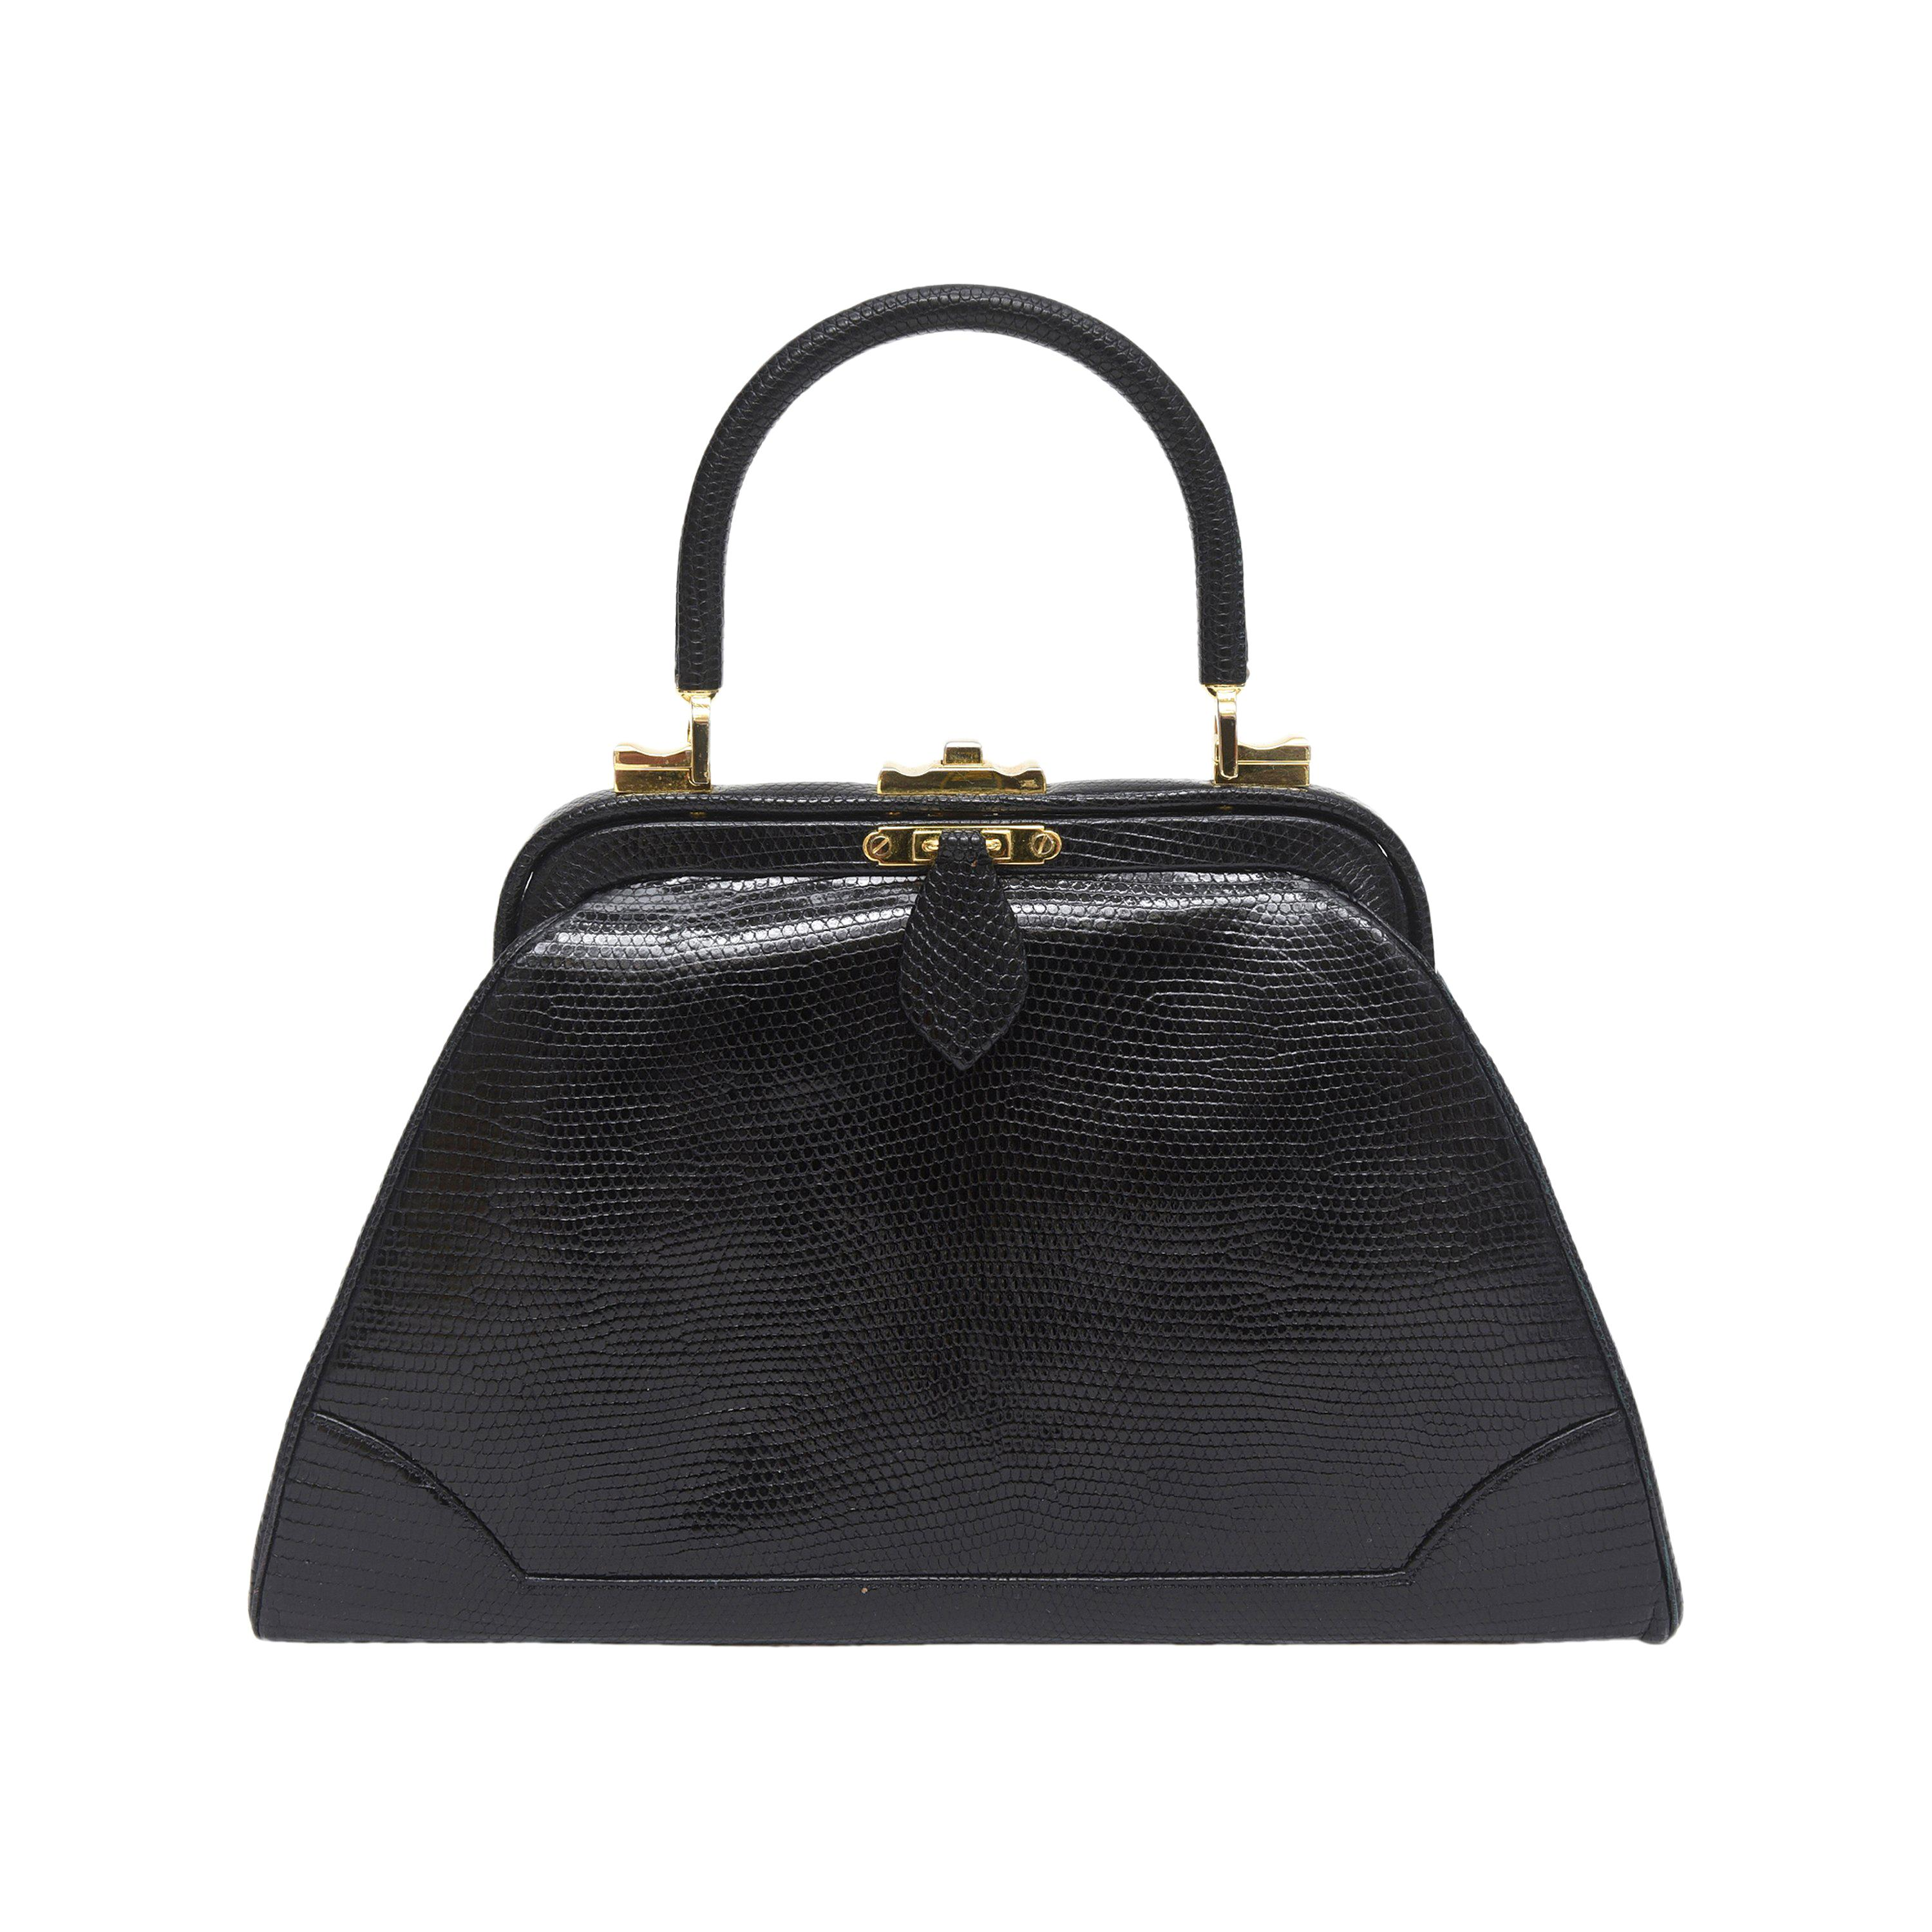 163794aa2d89 Vintage Judith Leiber Handbags and Purses - 236 For Sale at 1stdibs